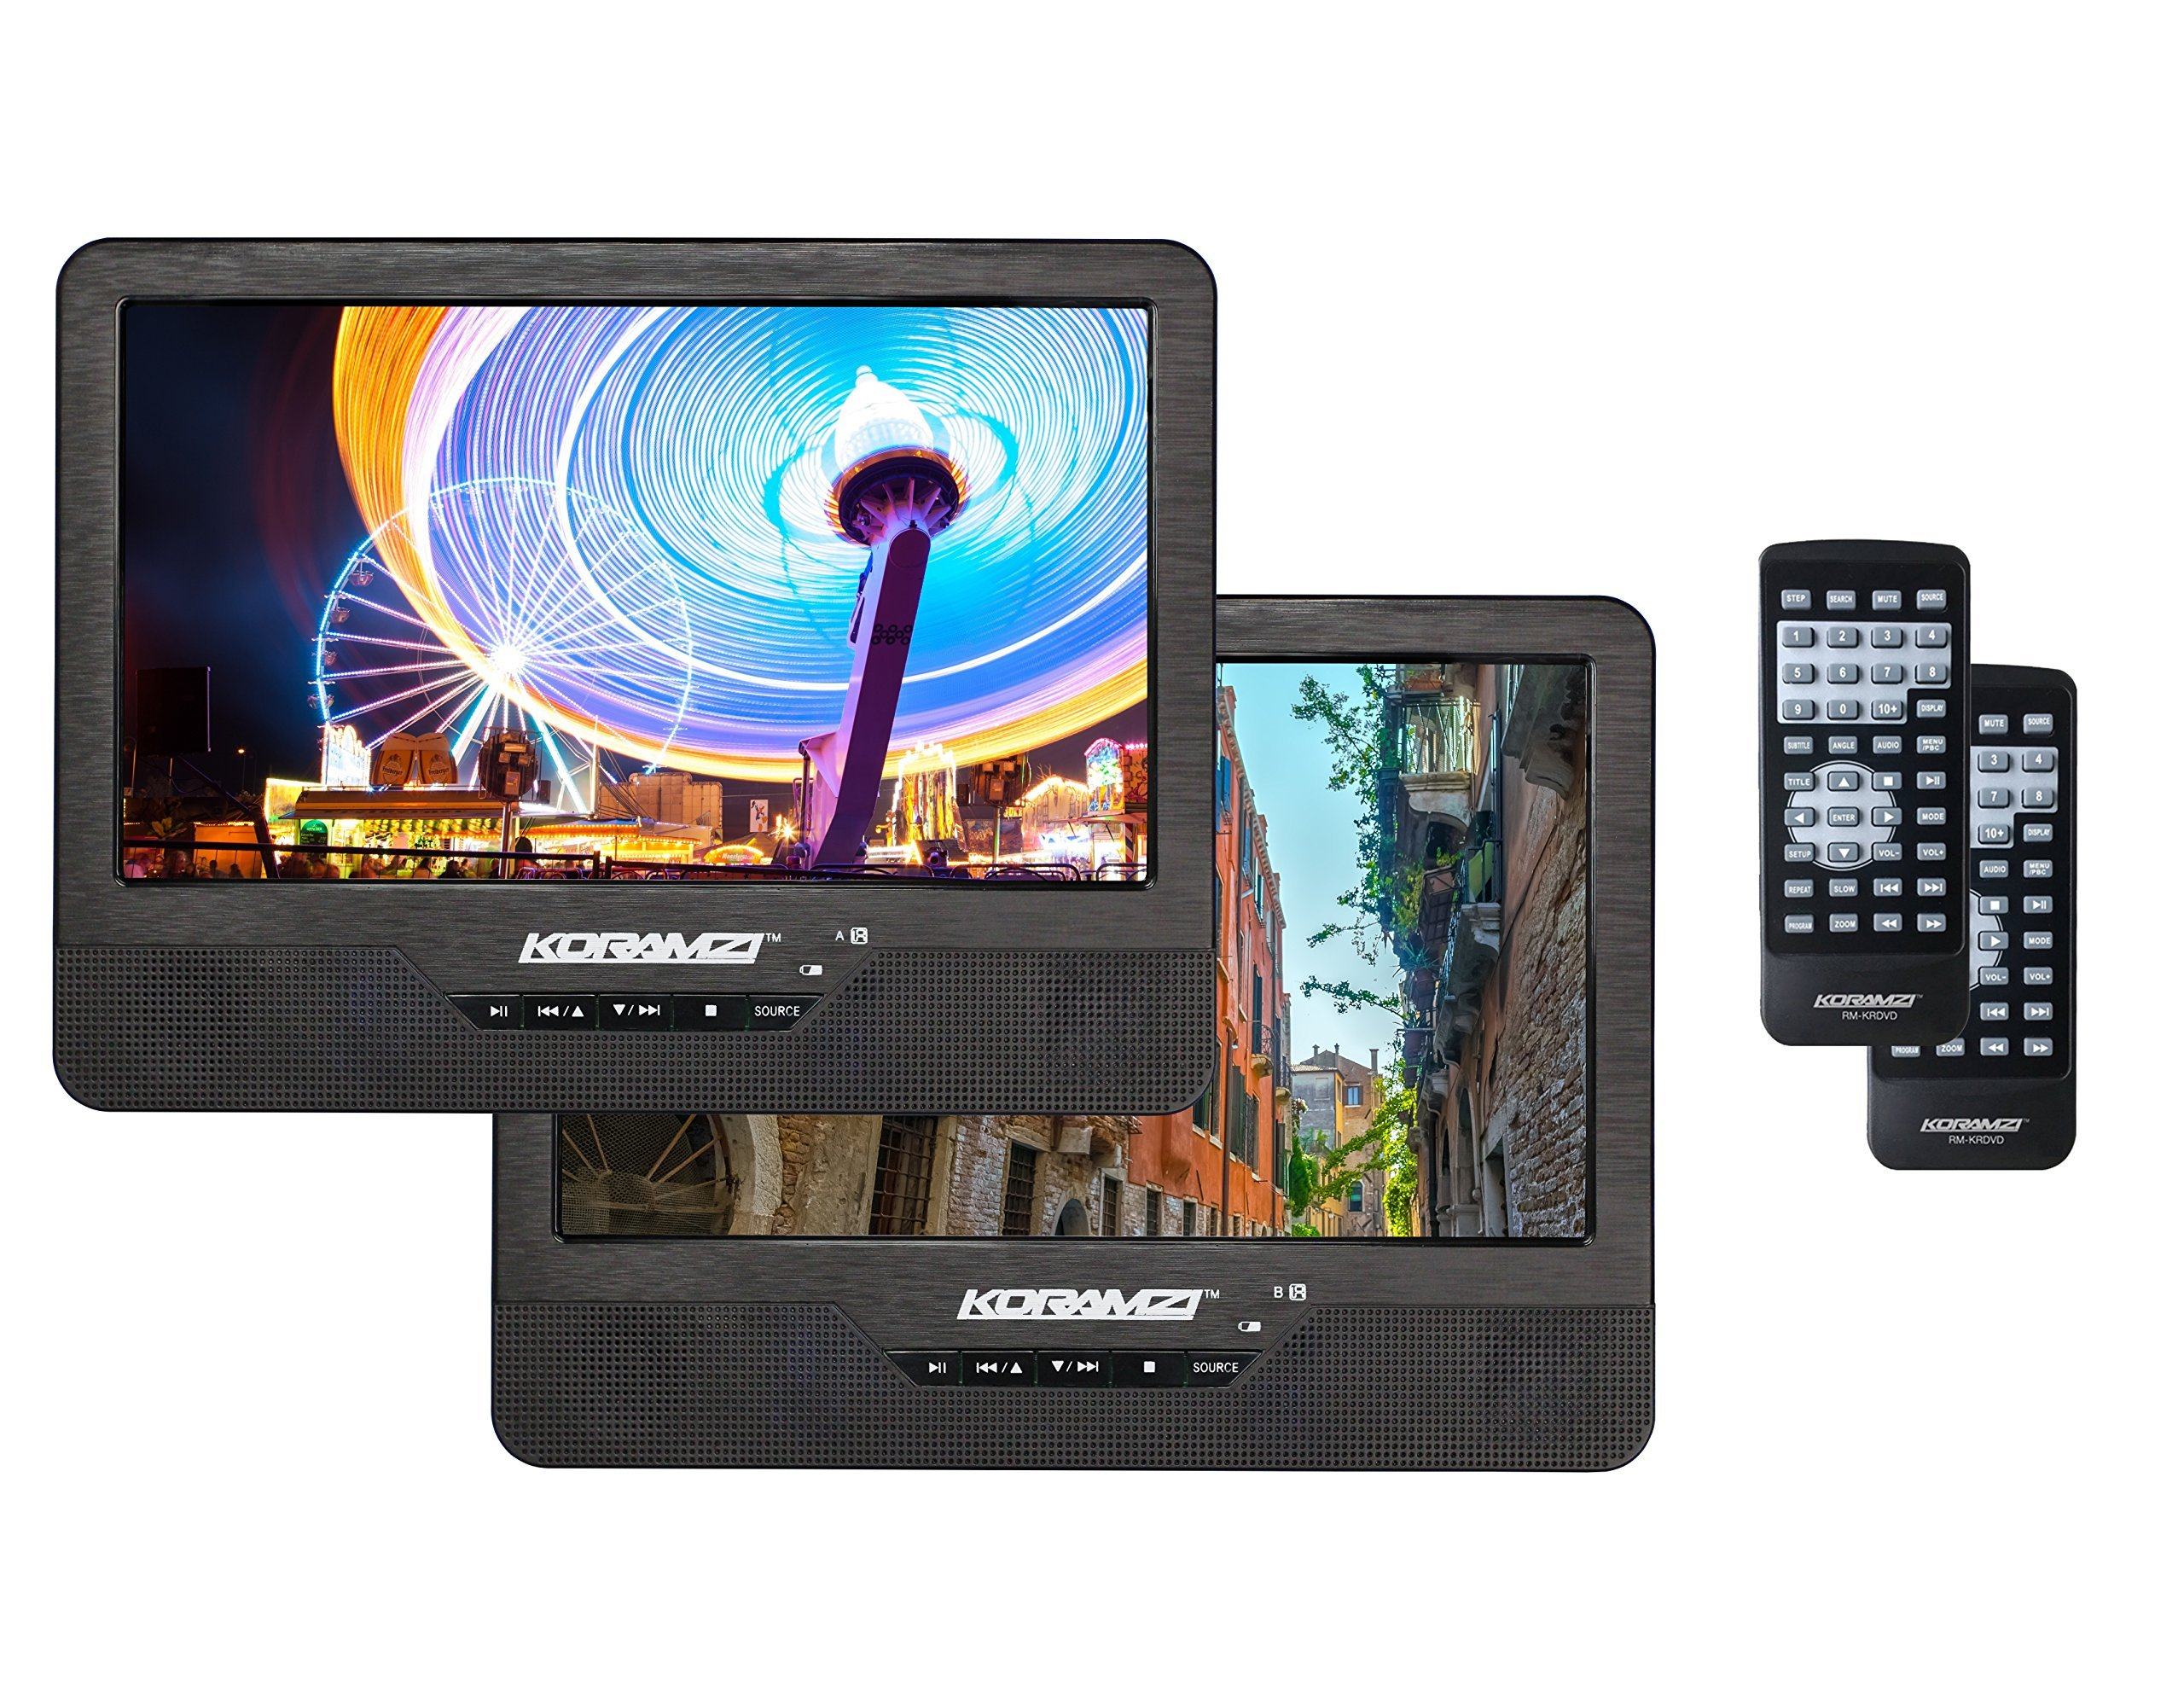 Koramzi Portable 9'' Dual Screen Dual DVD Player W Rechargeable Battery/ AC Adapter/ AV In/ USB &SD / Remote Control/ Car Adapt/ IR Transmitter Ready/ USB /Headrest Mounting Kit (Certified Refurbished) by Koramzi